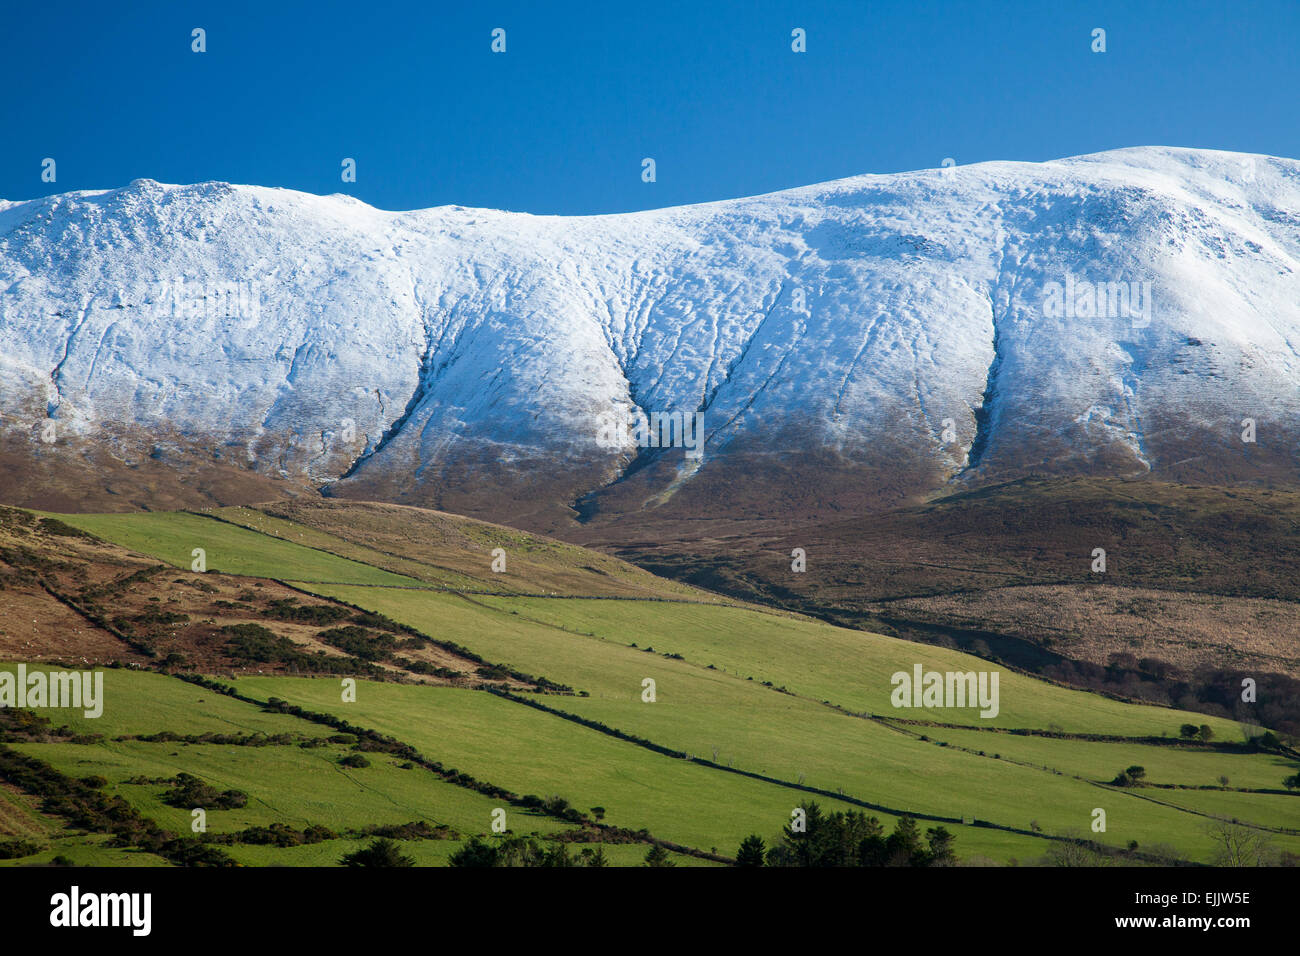 Caherconree Berge im Winter, Slieve Mish Mountains, der Halbinsel Dingle in der Grafschaft Kerry, Irland. Stockbild